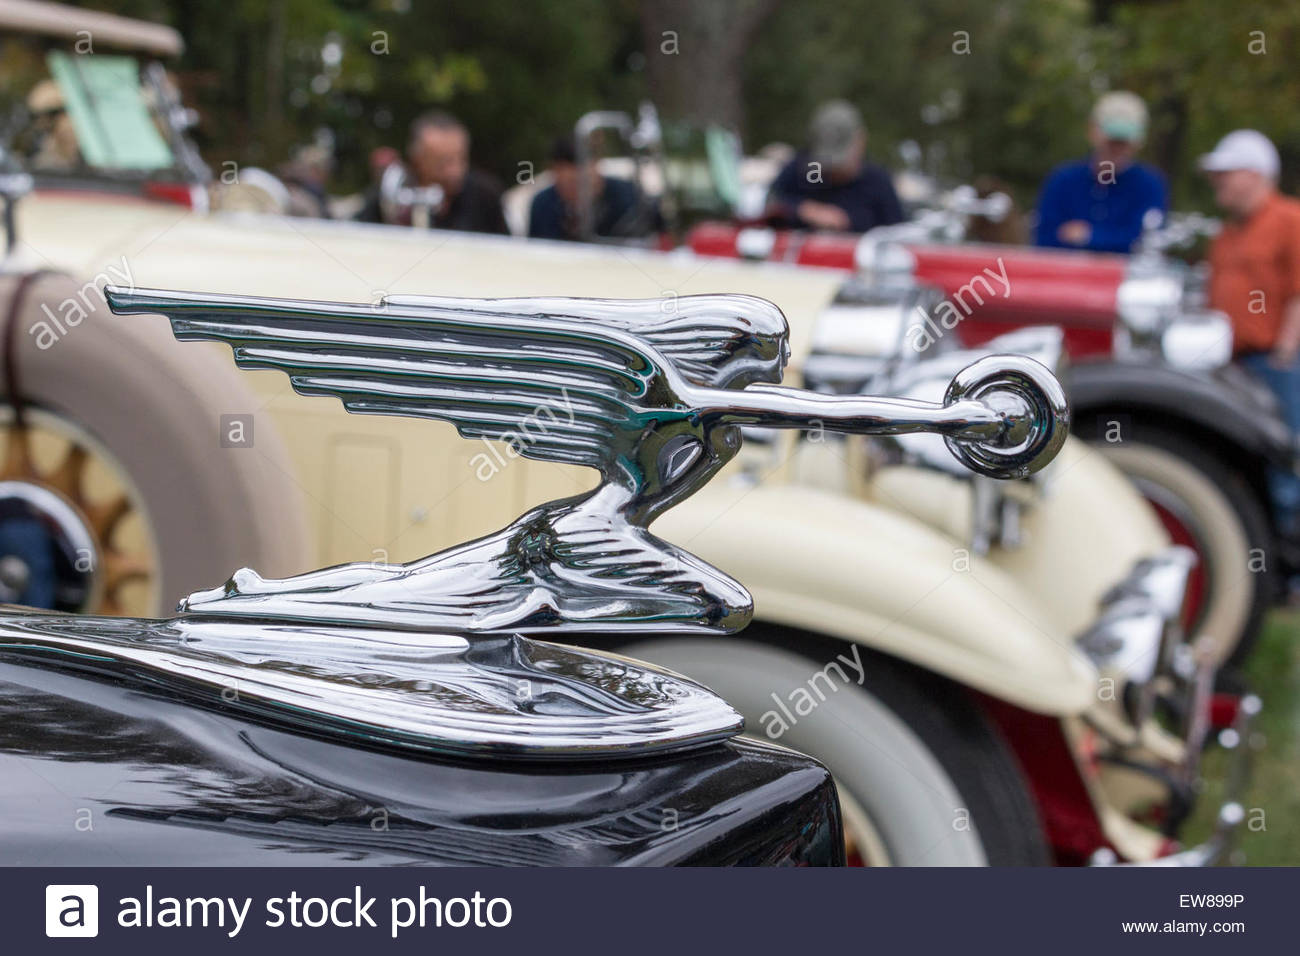 Hershey Auto Show 2017 >> Antique Packard Stock Photos & Antique Packard Stock Images - Alamy